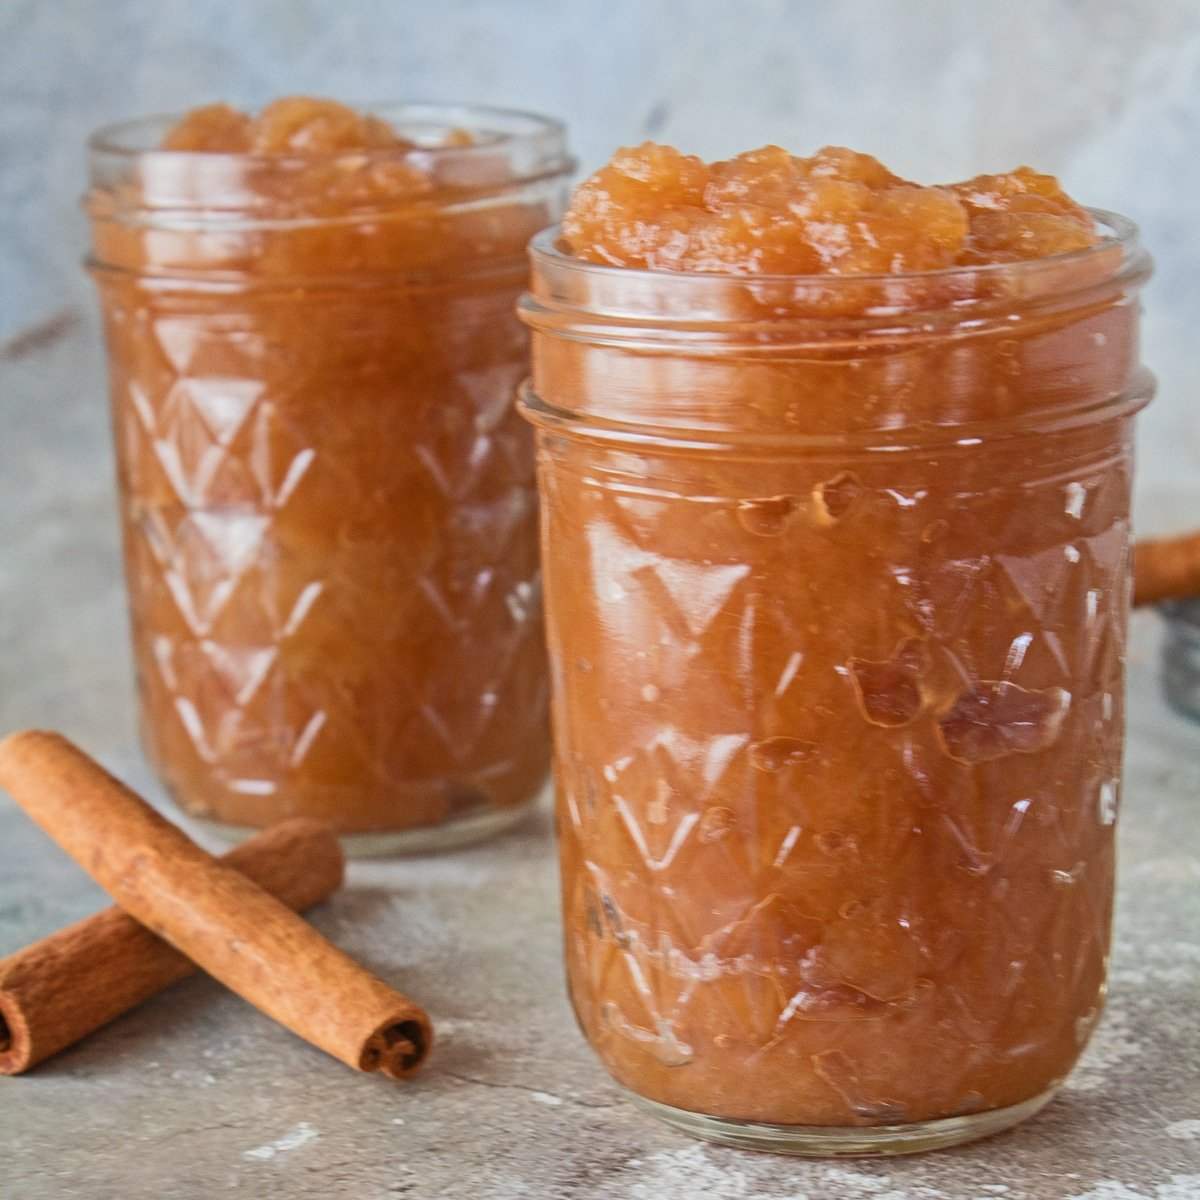 Canned crockpot applesauce for easy storing.